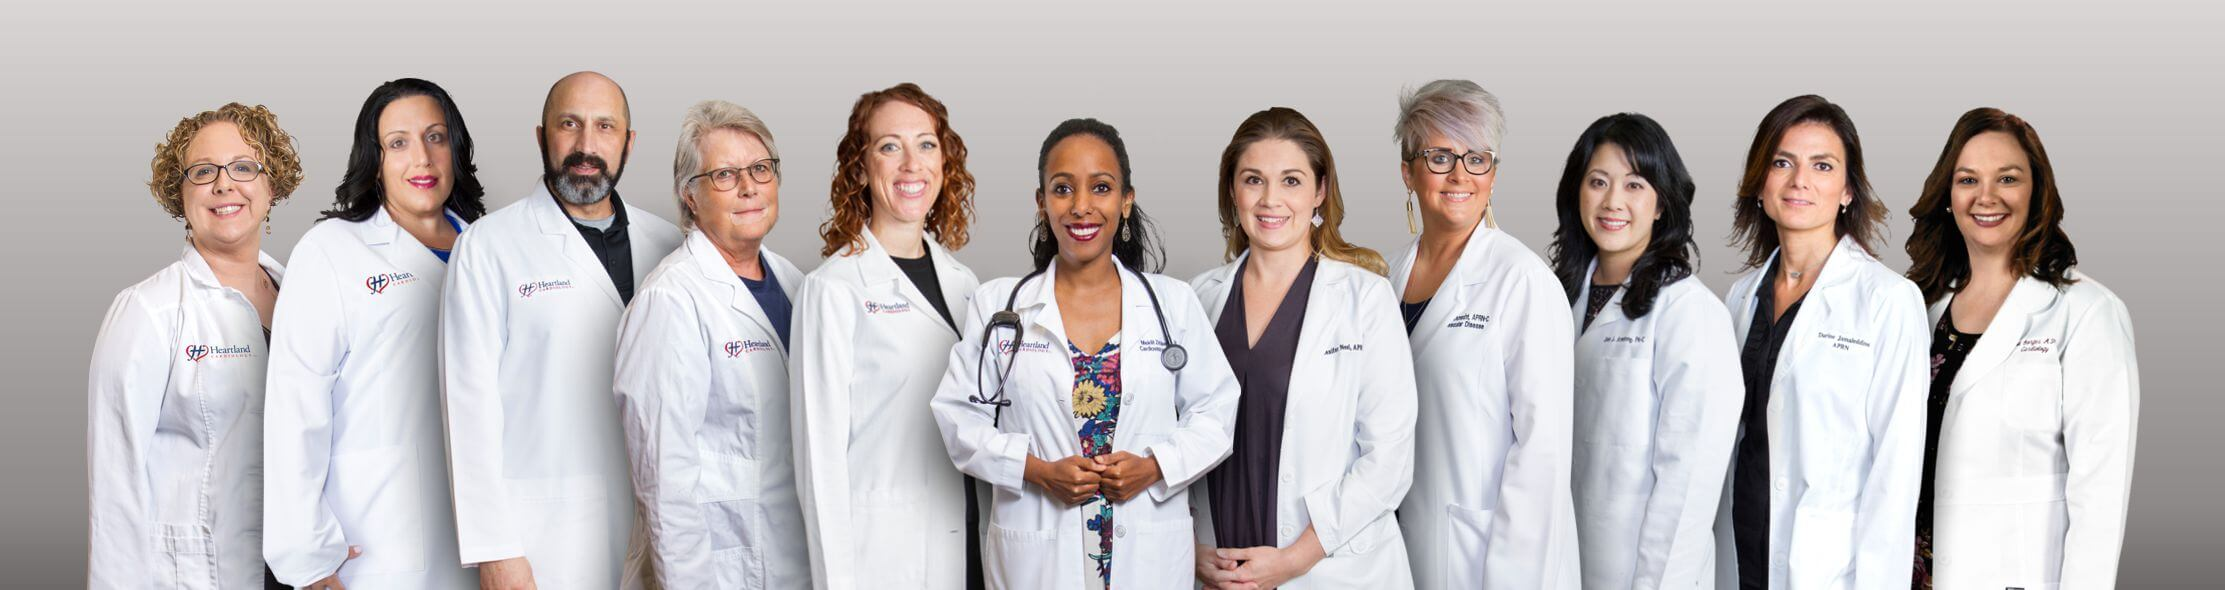 Mid-level physicians